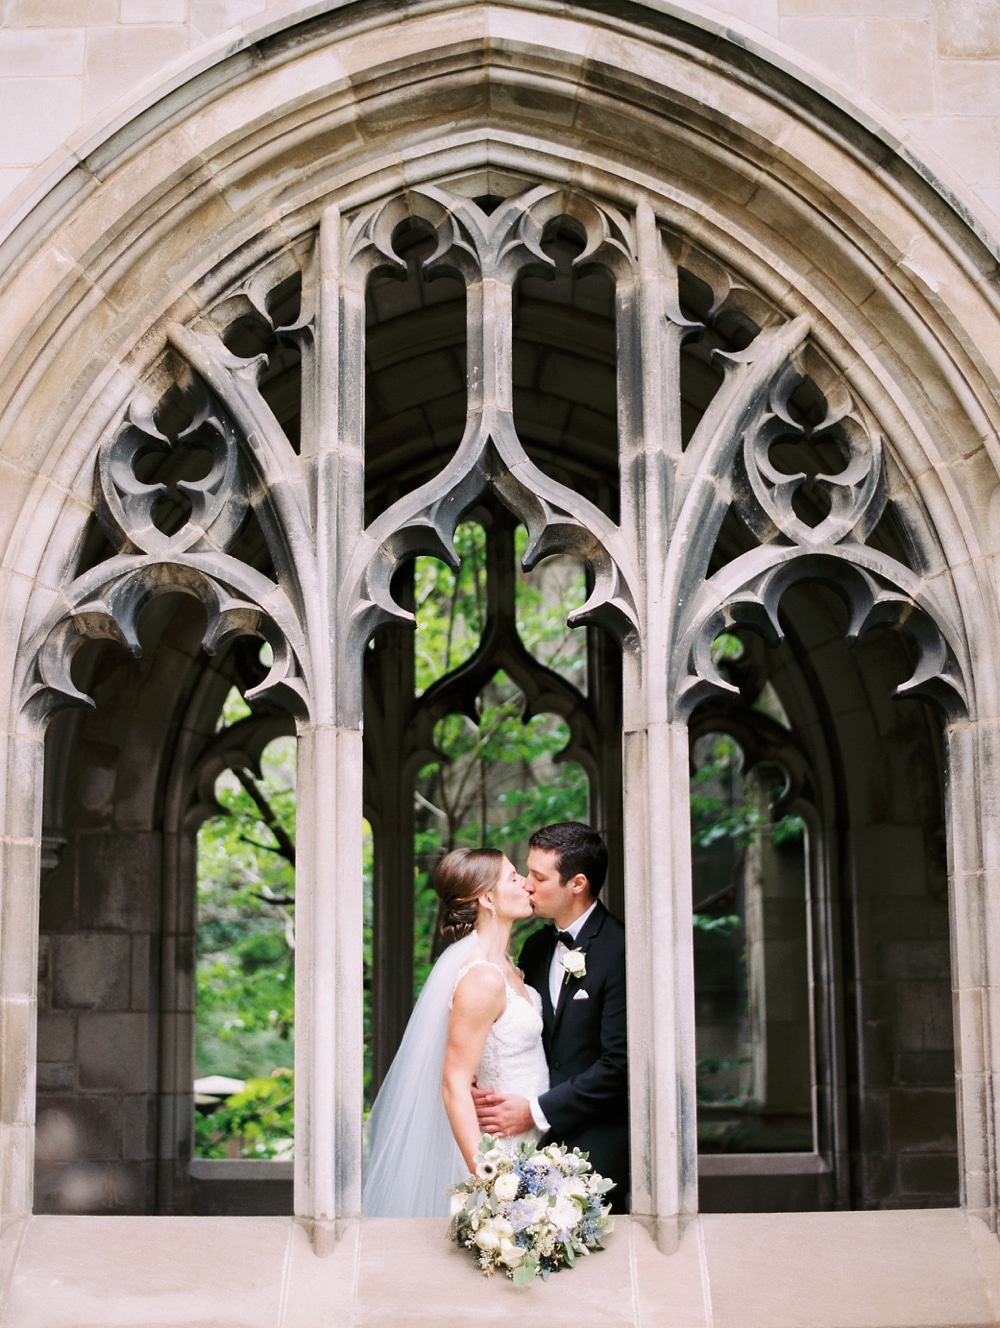 kristin-la-voie-photography-university-of-chicago-wedding-bridgeport-art-center-bond-chapel-138